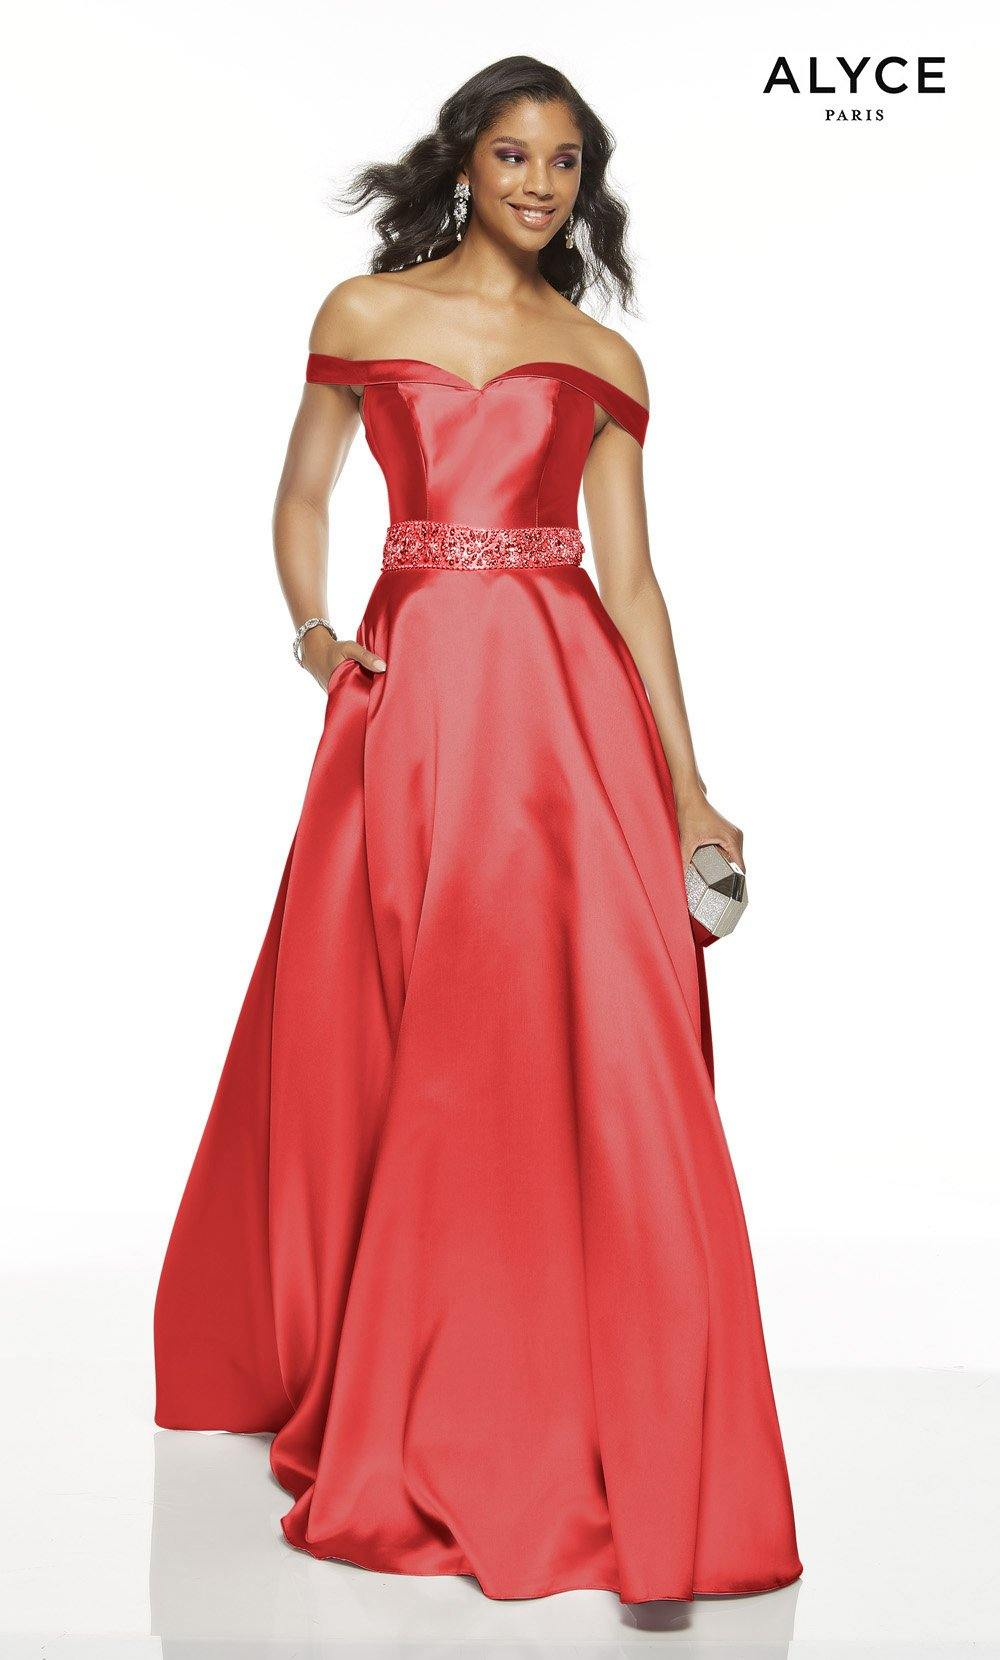 Red off the shoulder formal dress with pockets